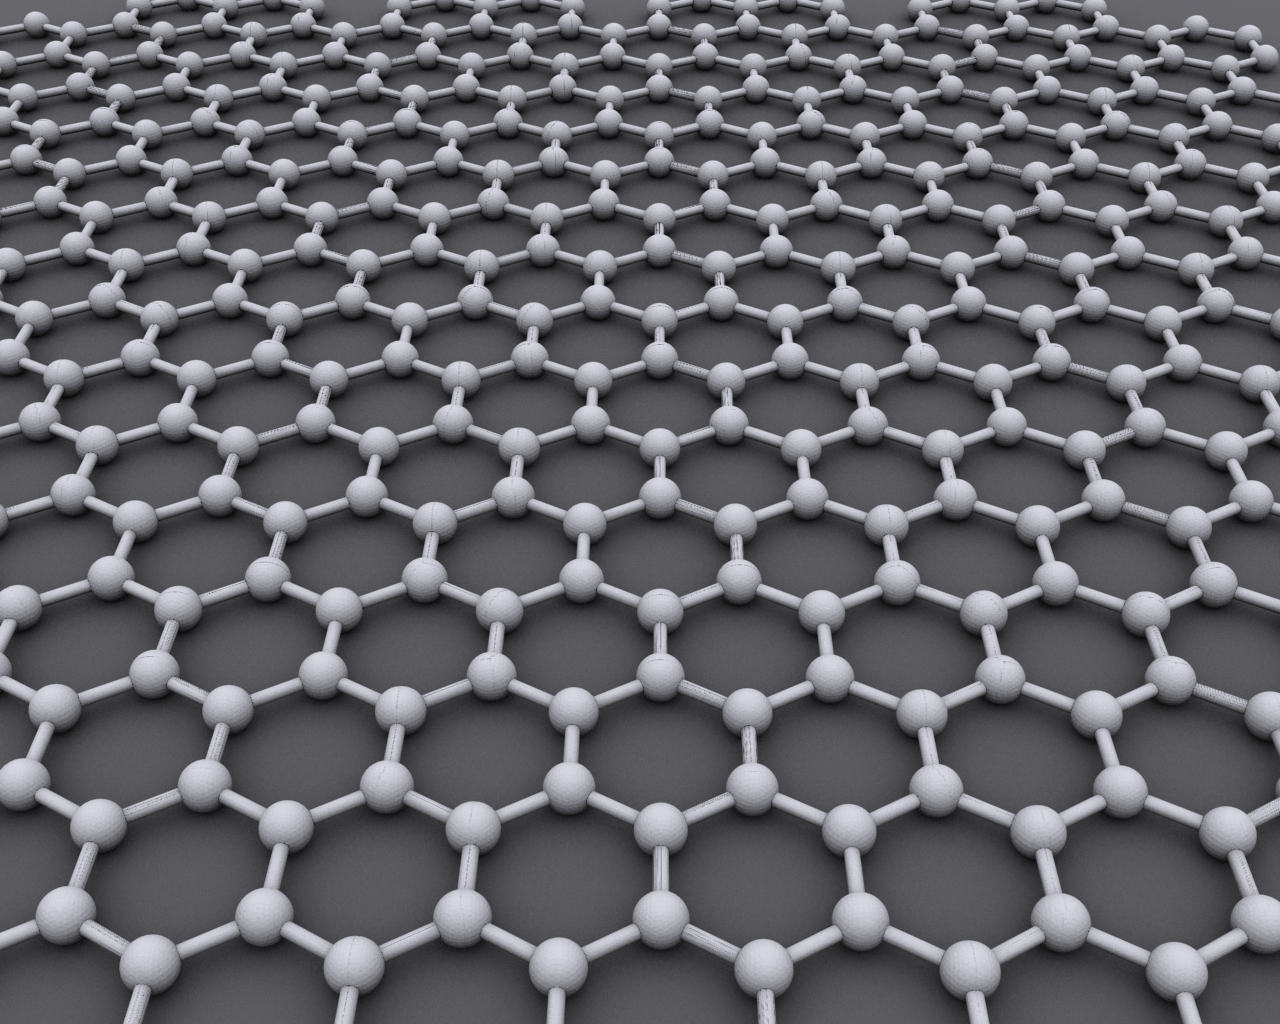 Where graphene battery is mostly used?